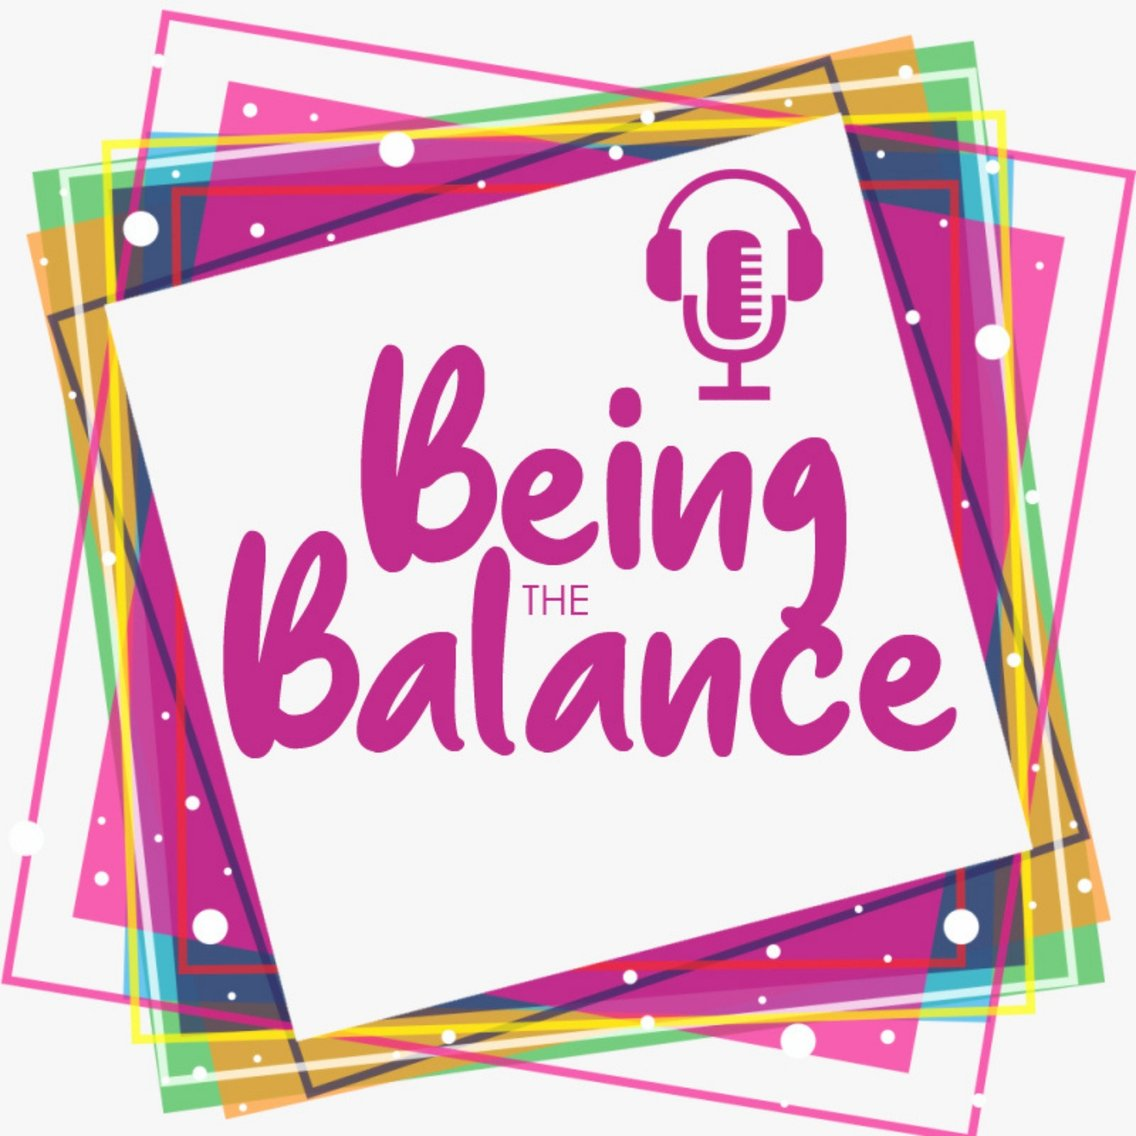 Being The Balance - Cover Image